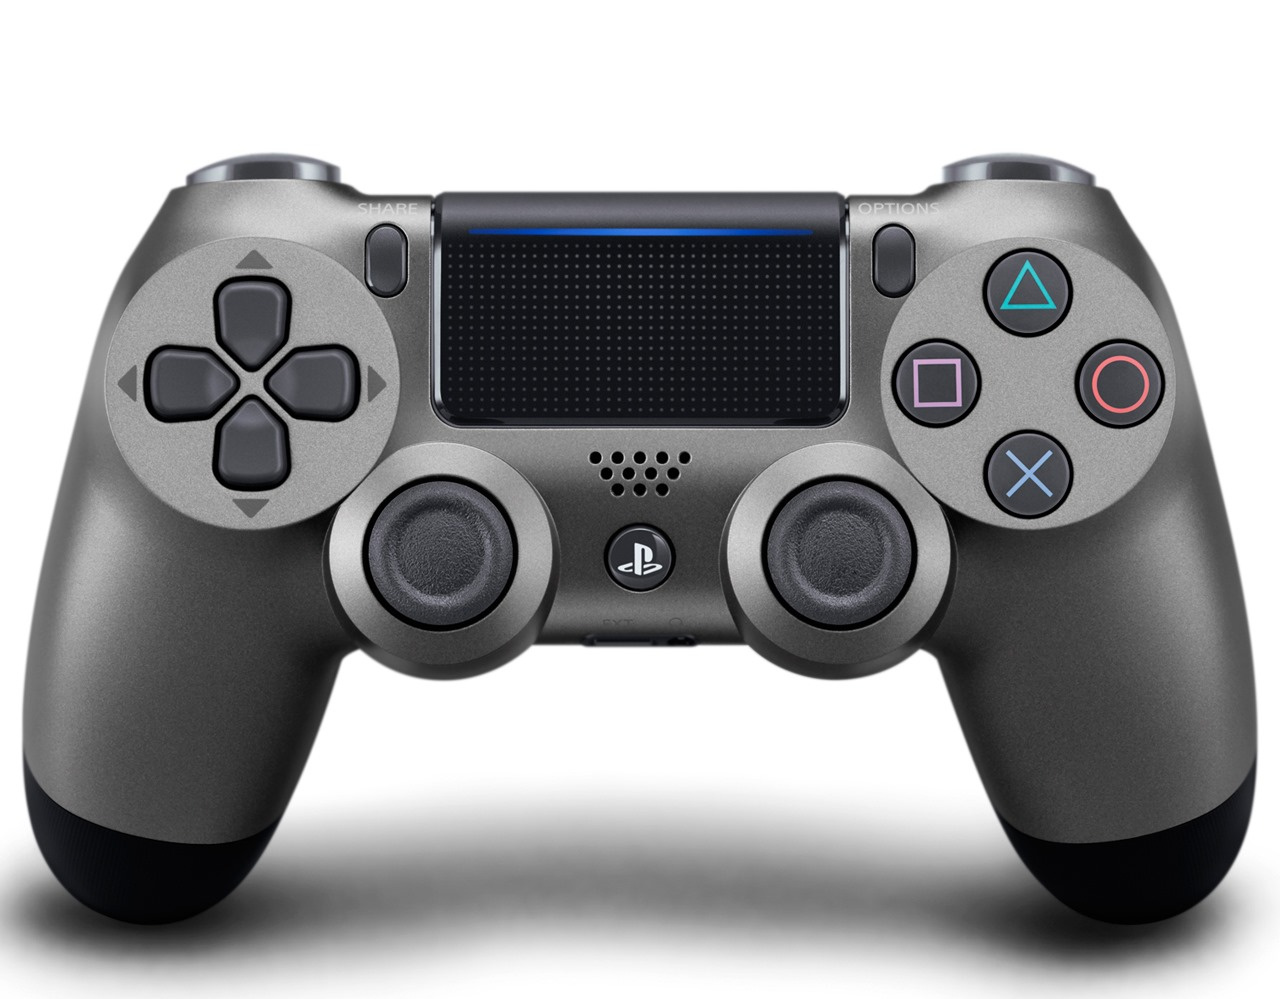 Game stop is selling new PS4 controllers for $40 as part of the Playstation Days of Play deal (expires June 18). If you trade in a working Sony PS4 controller for credit, you should receive around $$24 in credit (depending on Rewards level), which you can use .